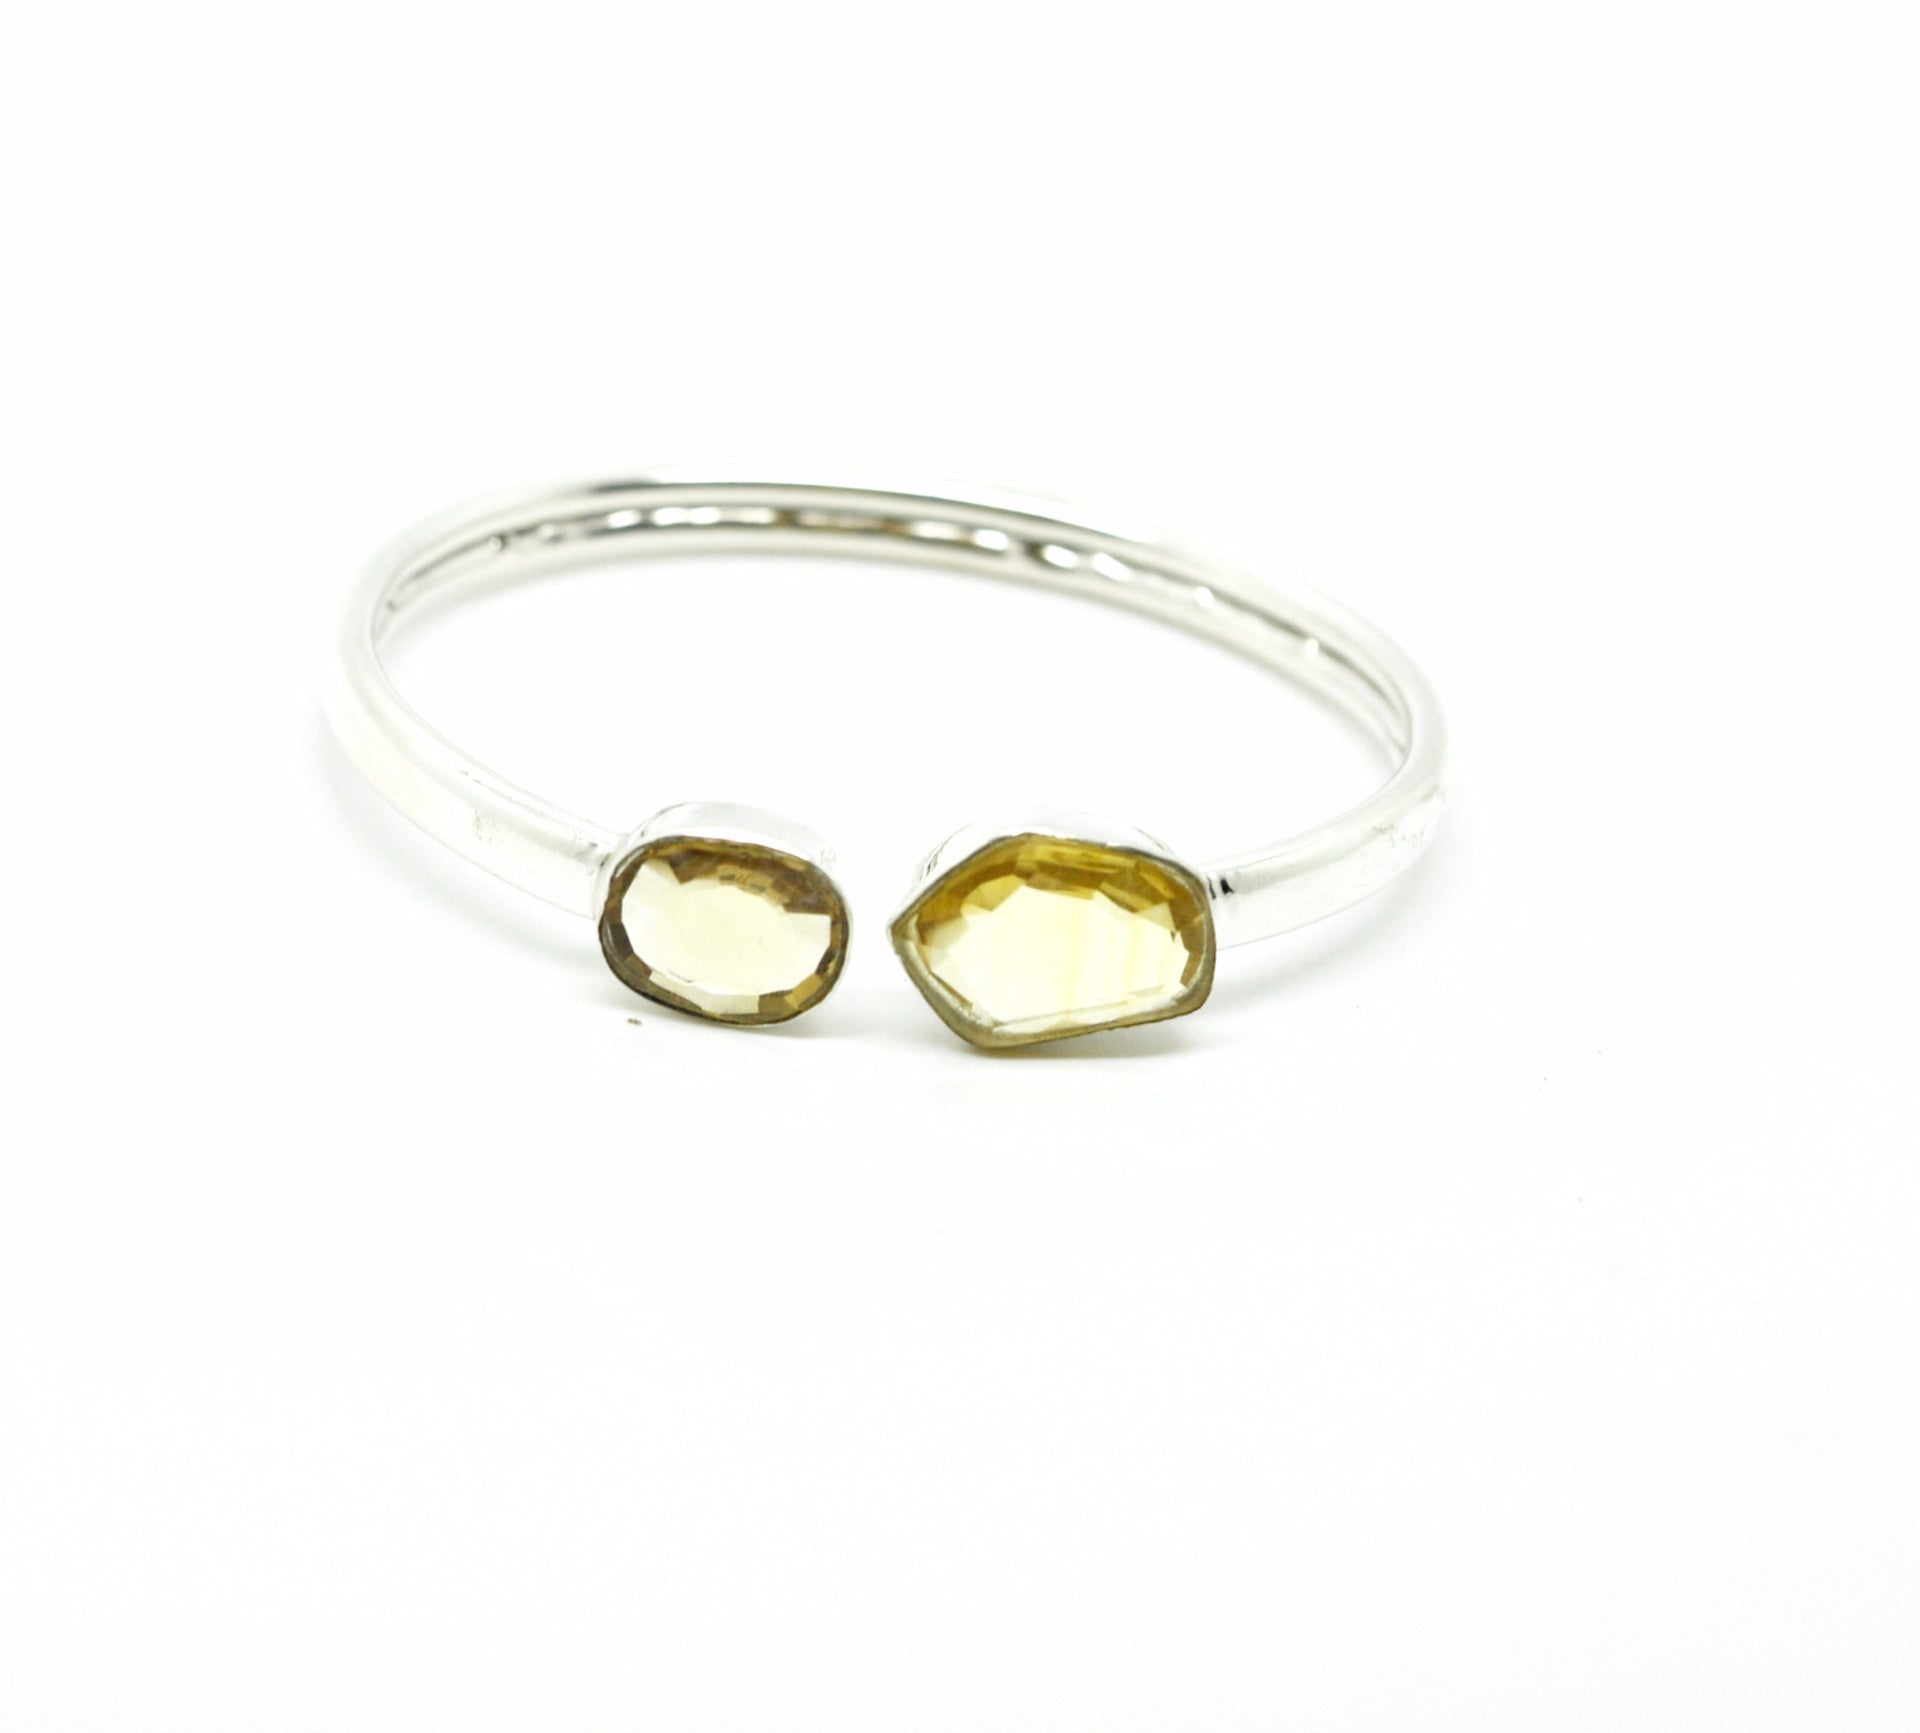 SOLD - On Sale-Thin Cuff - Citrine